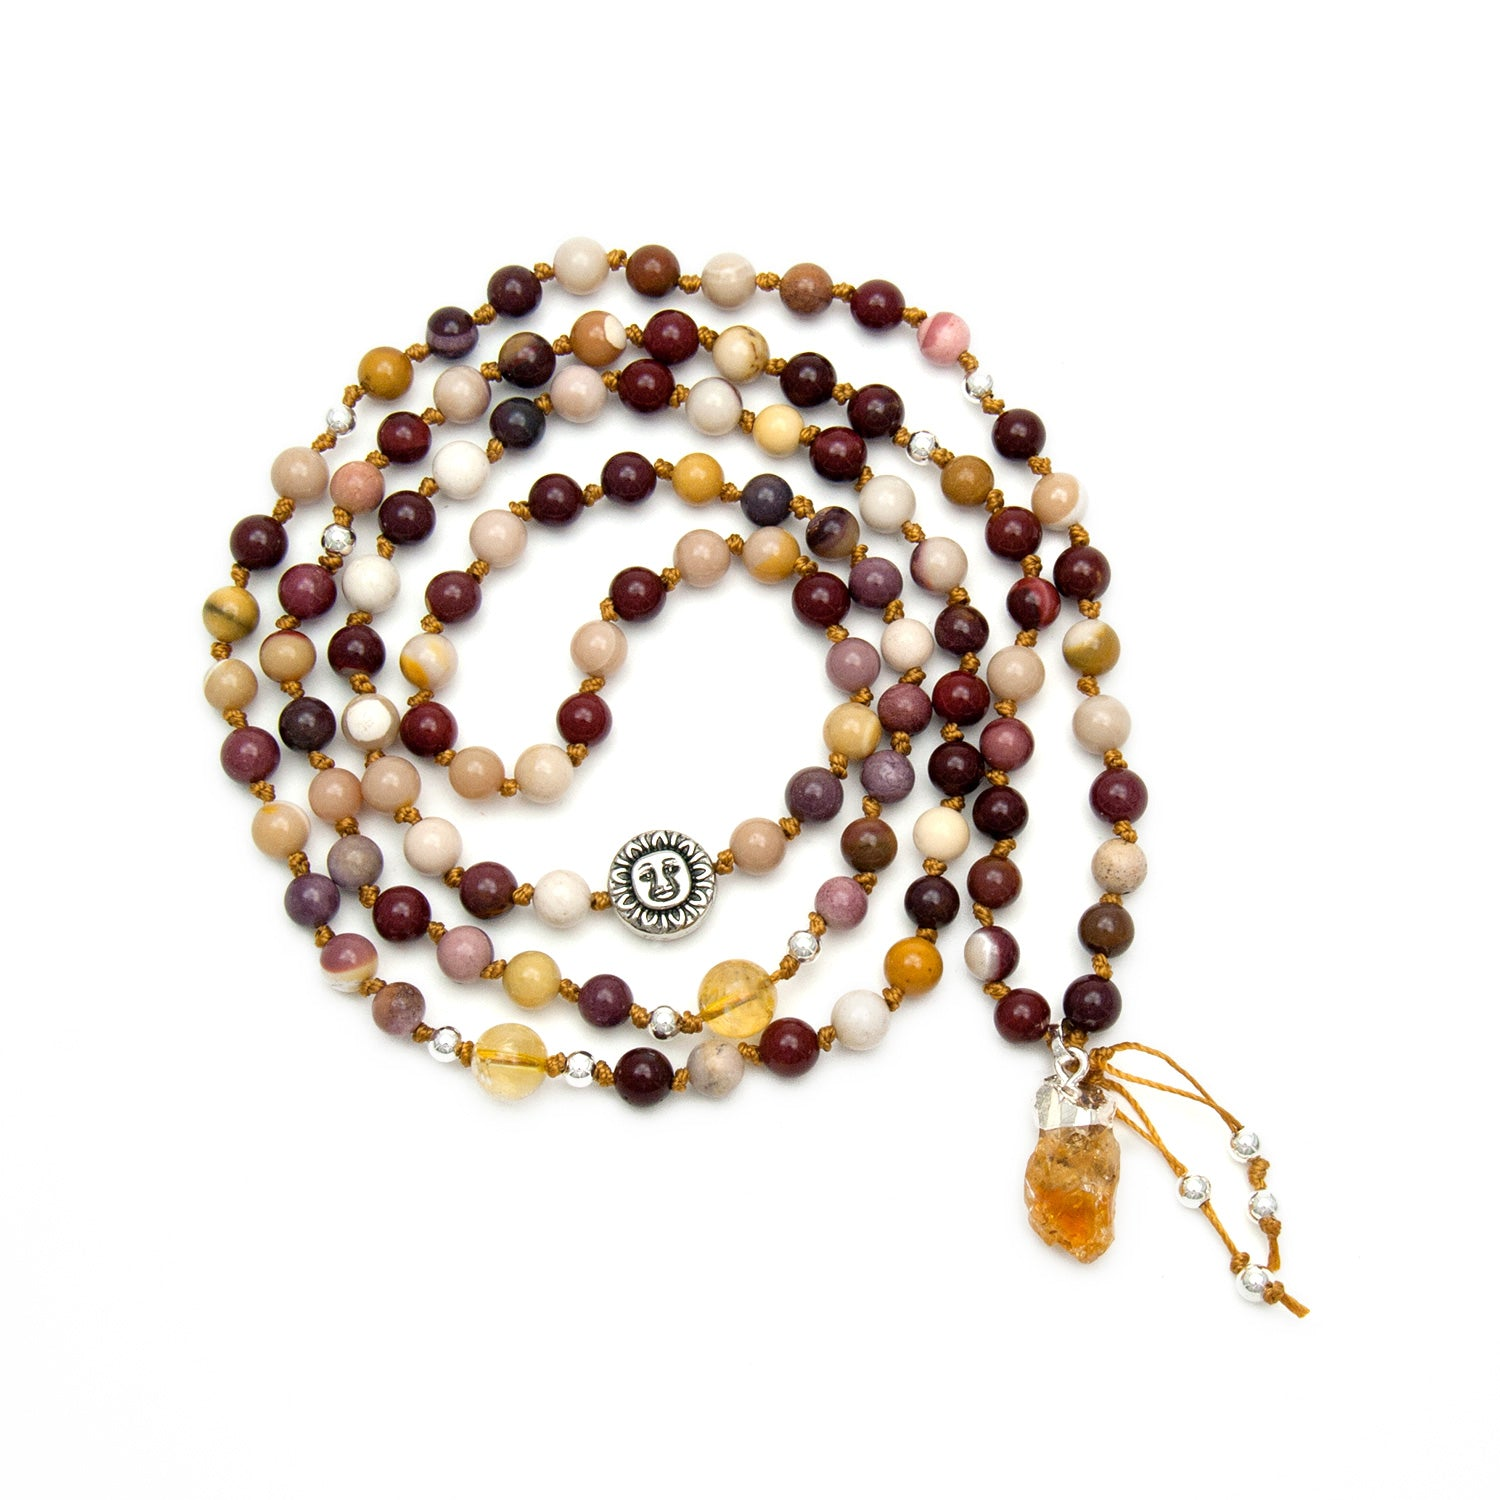 Eclipse Mala Necklace - Mookaite Jasper & Citrine by Golden Lotus Mala